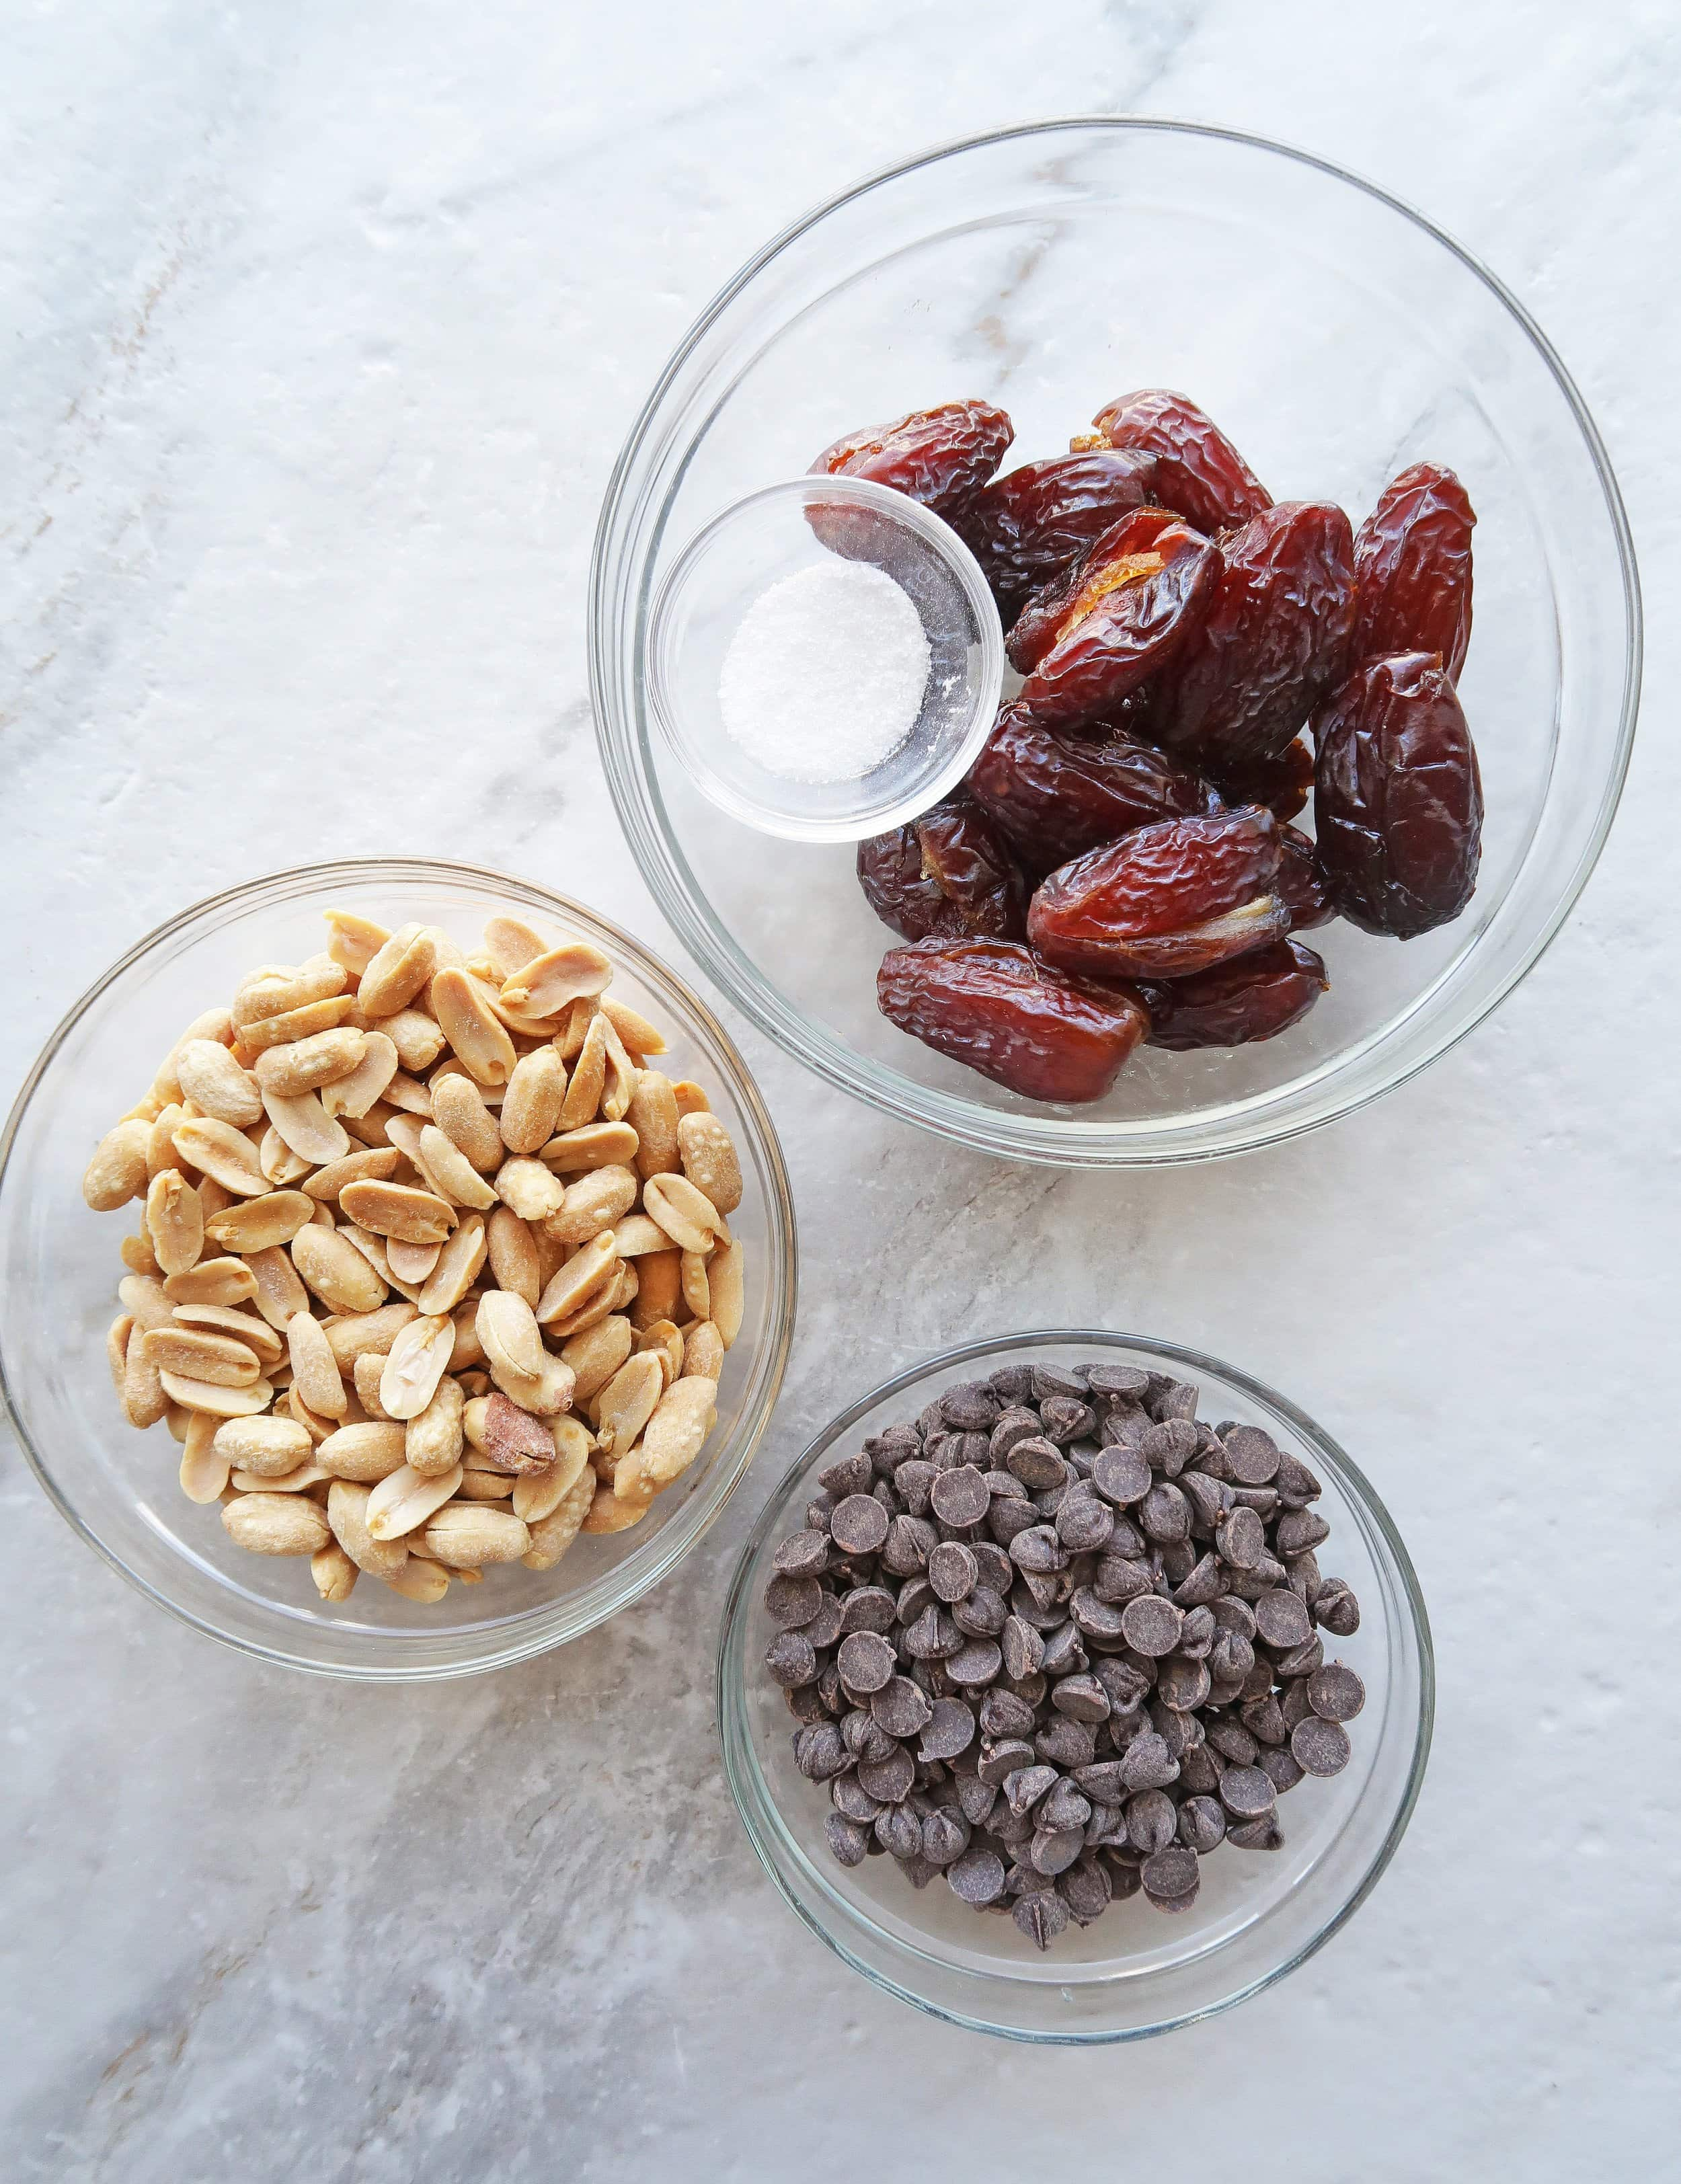 Bowls of roasted salted peanuts, chocolate chips, Medjool dates, and salt.